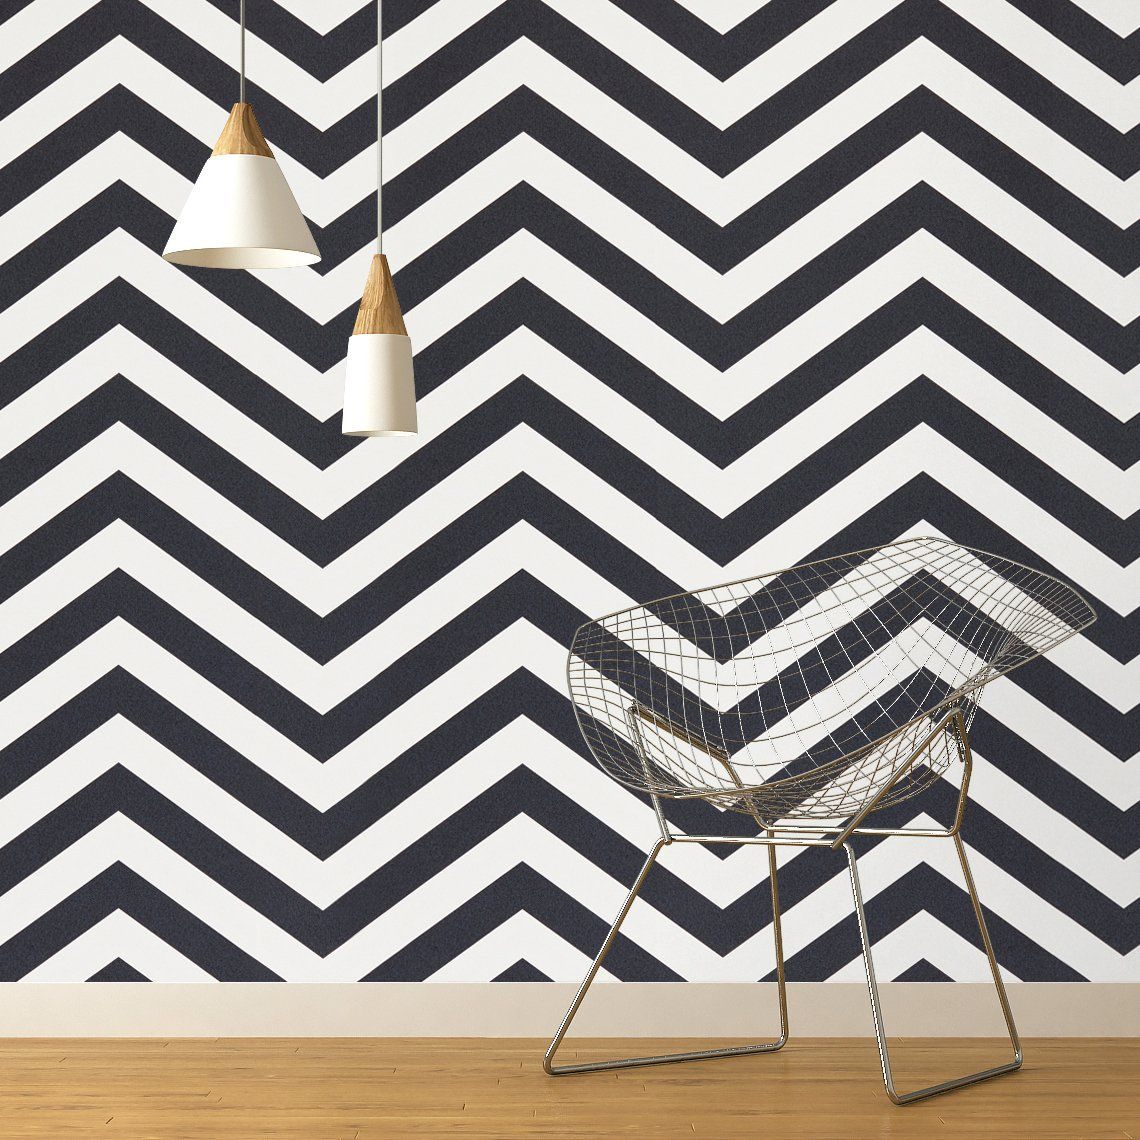 papier peint chevron expans sur intiss motif g om trique noir et blanc peinture et papier. Black Bedroom Furniture Sets. Home Design Ideas